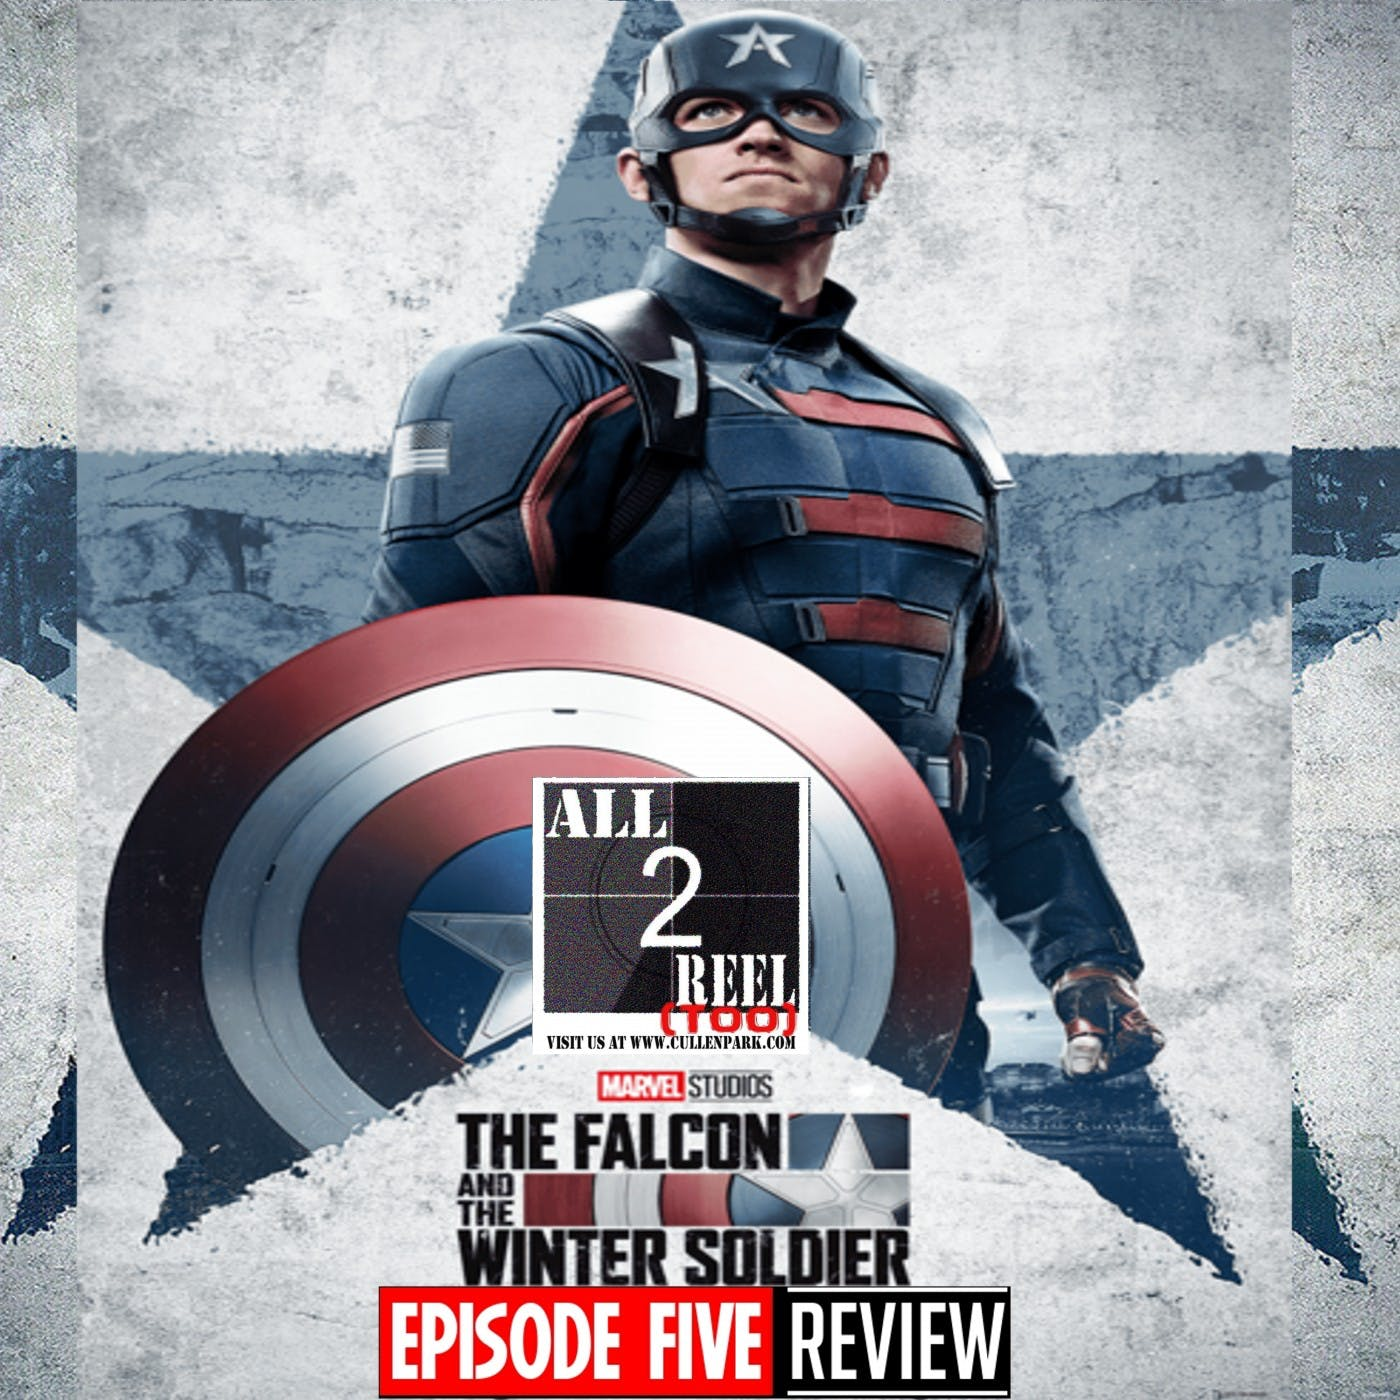 The Falcon and the Winter Soldier EPISODE 5 REVIEW